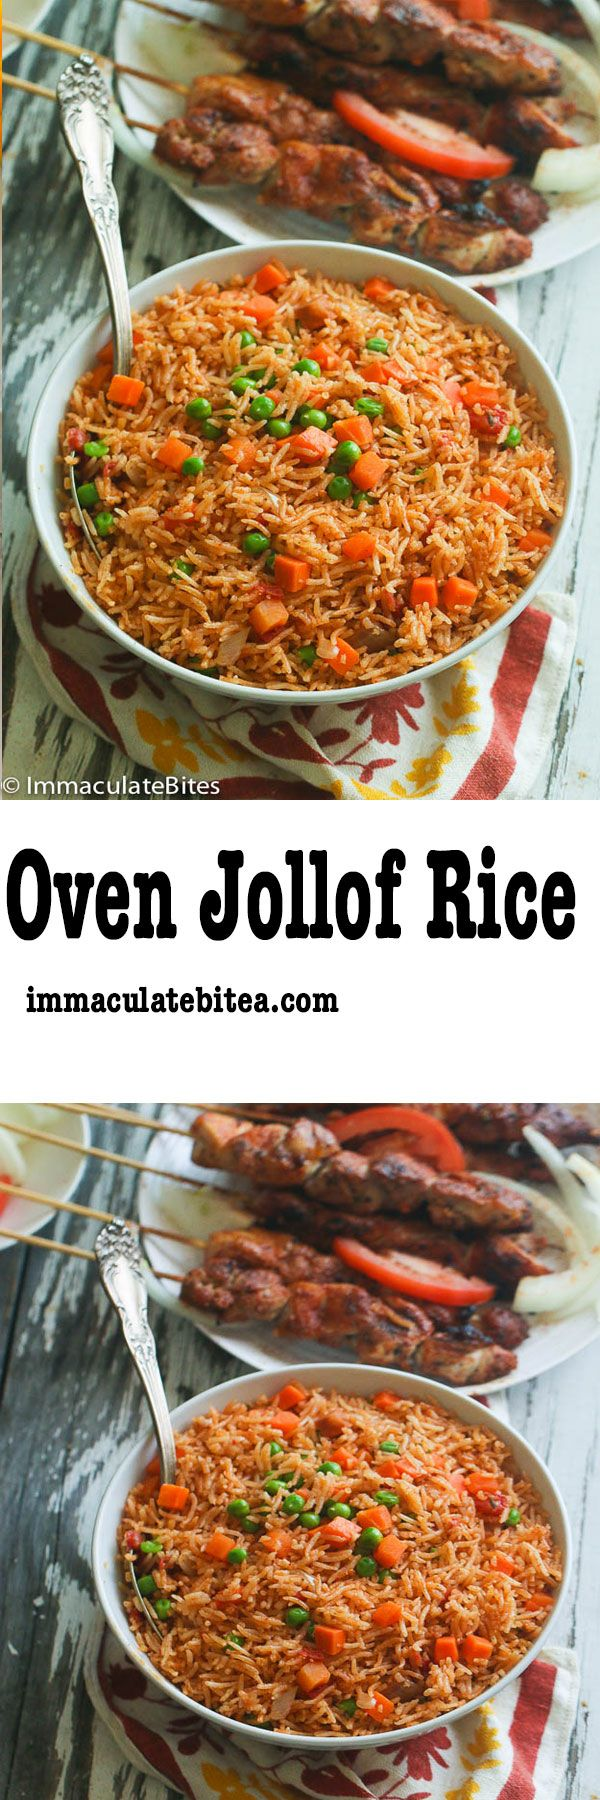 Jellof Rice (Oven and Stovetop Method) Recipe Jollof